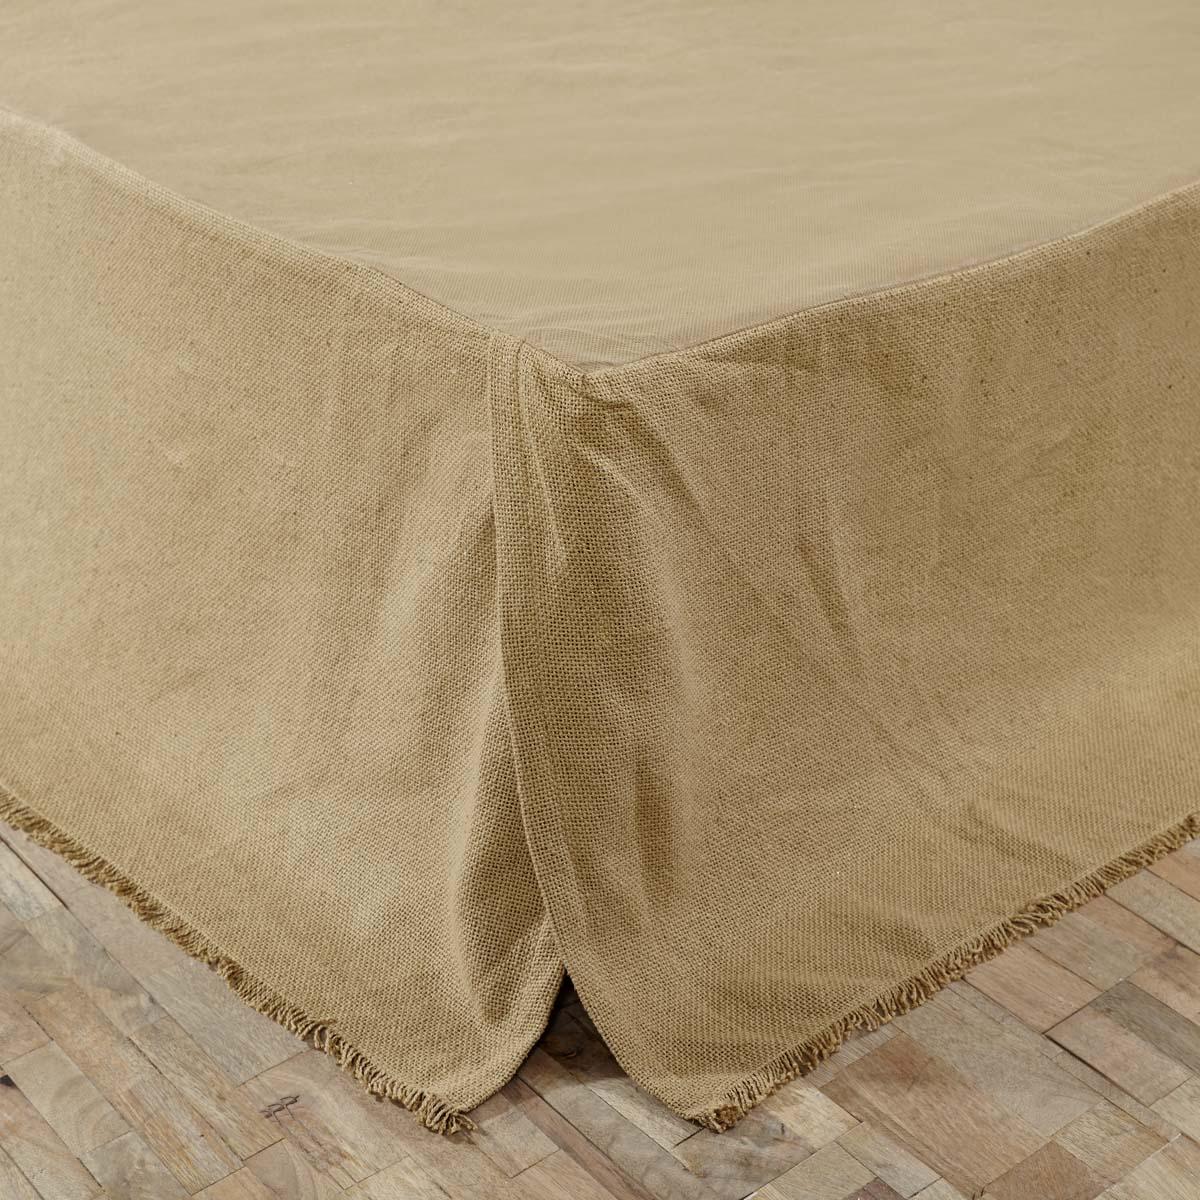 Burlap Natural Fringed Queen Bed Skirt 60x80x16 - Woodrol